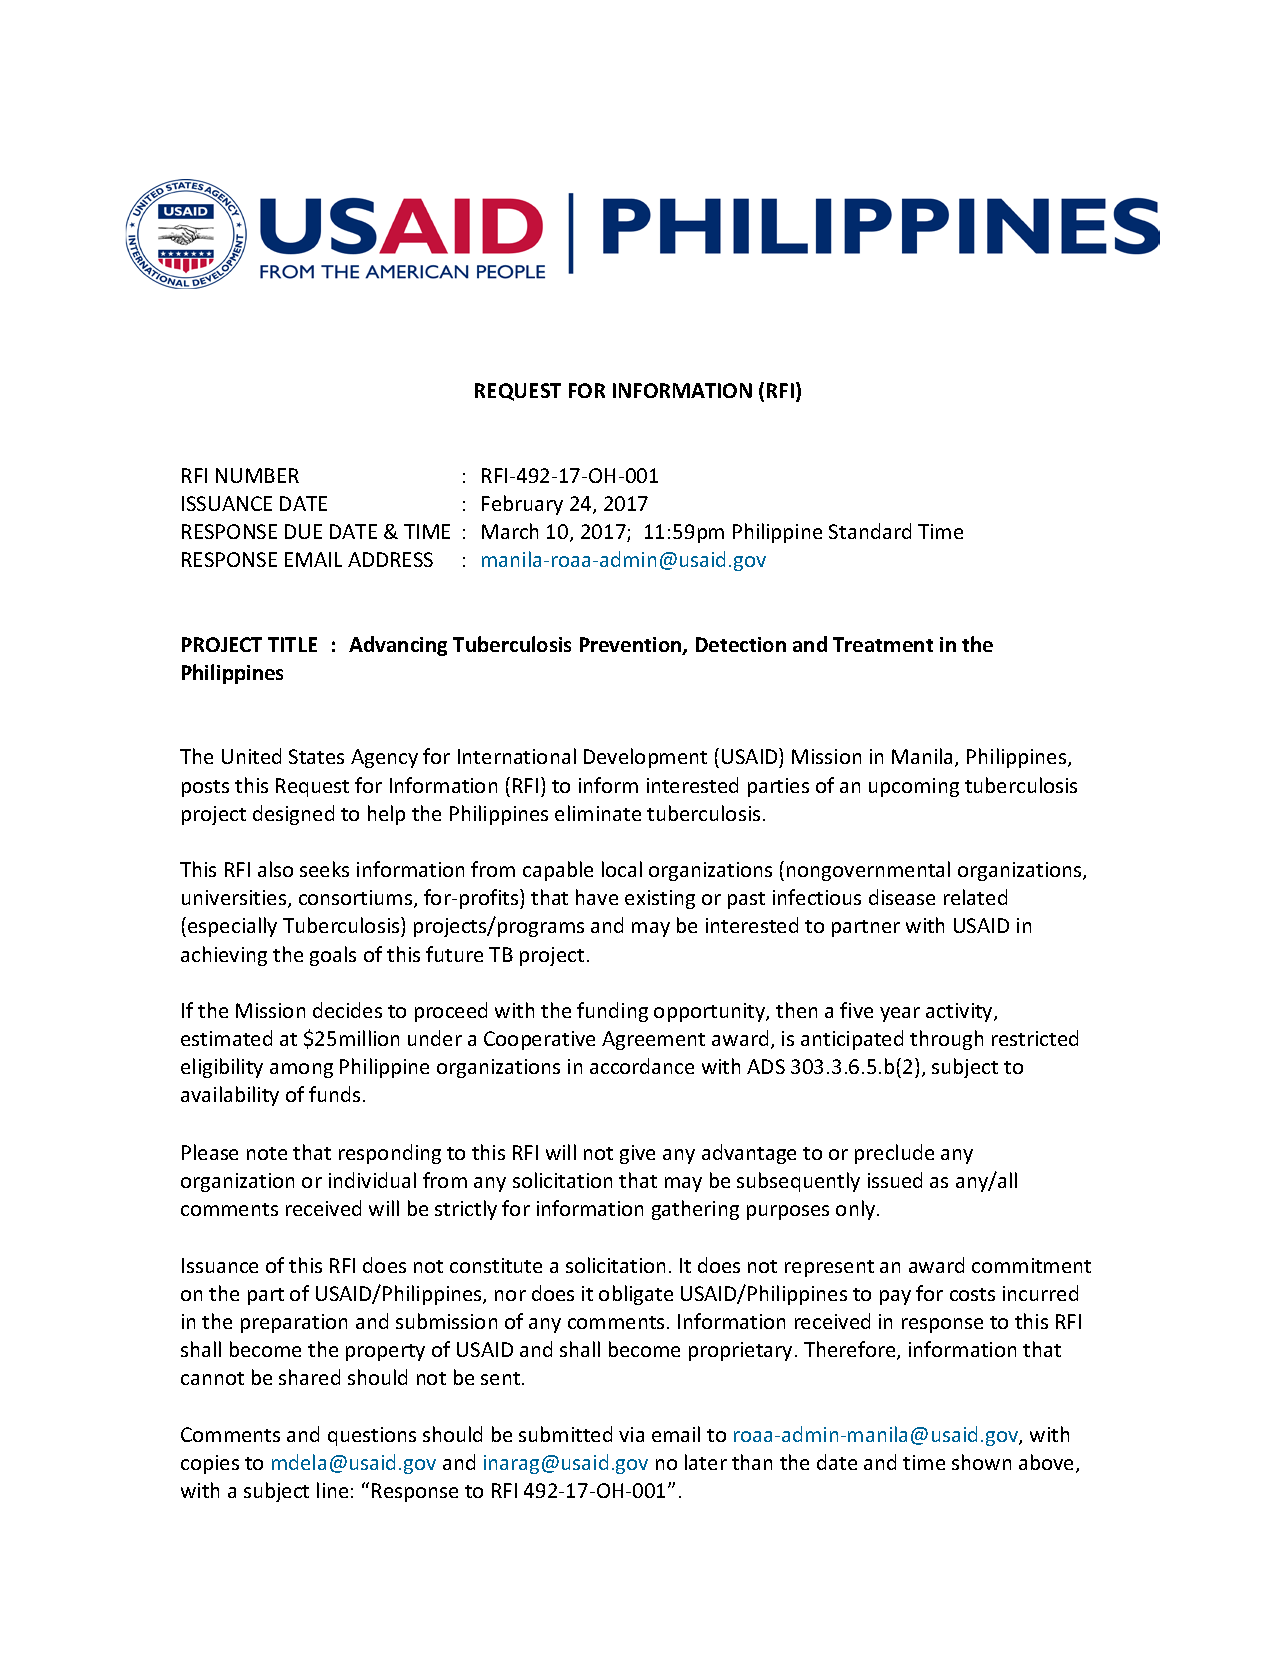 RFI-Advancing TB Prevention, Detection and Treatment in the Philippines